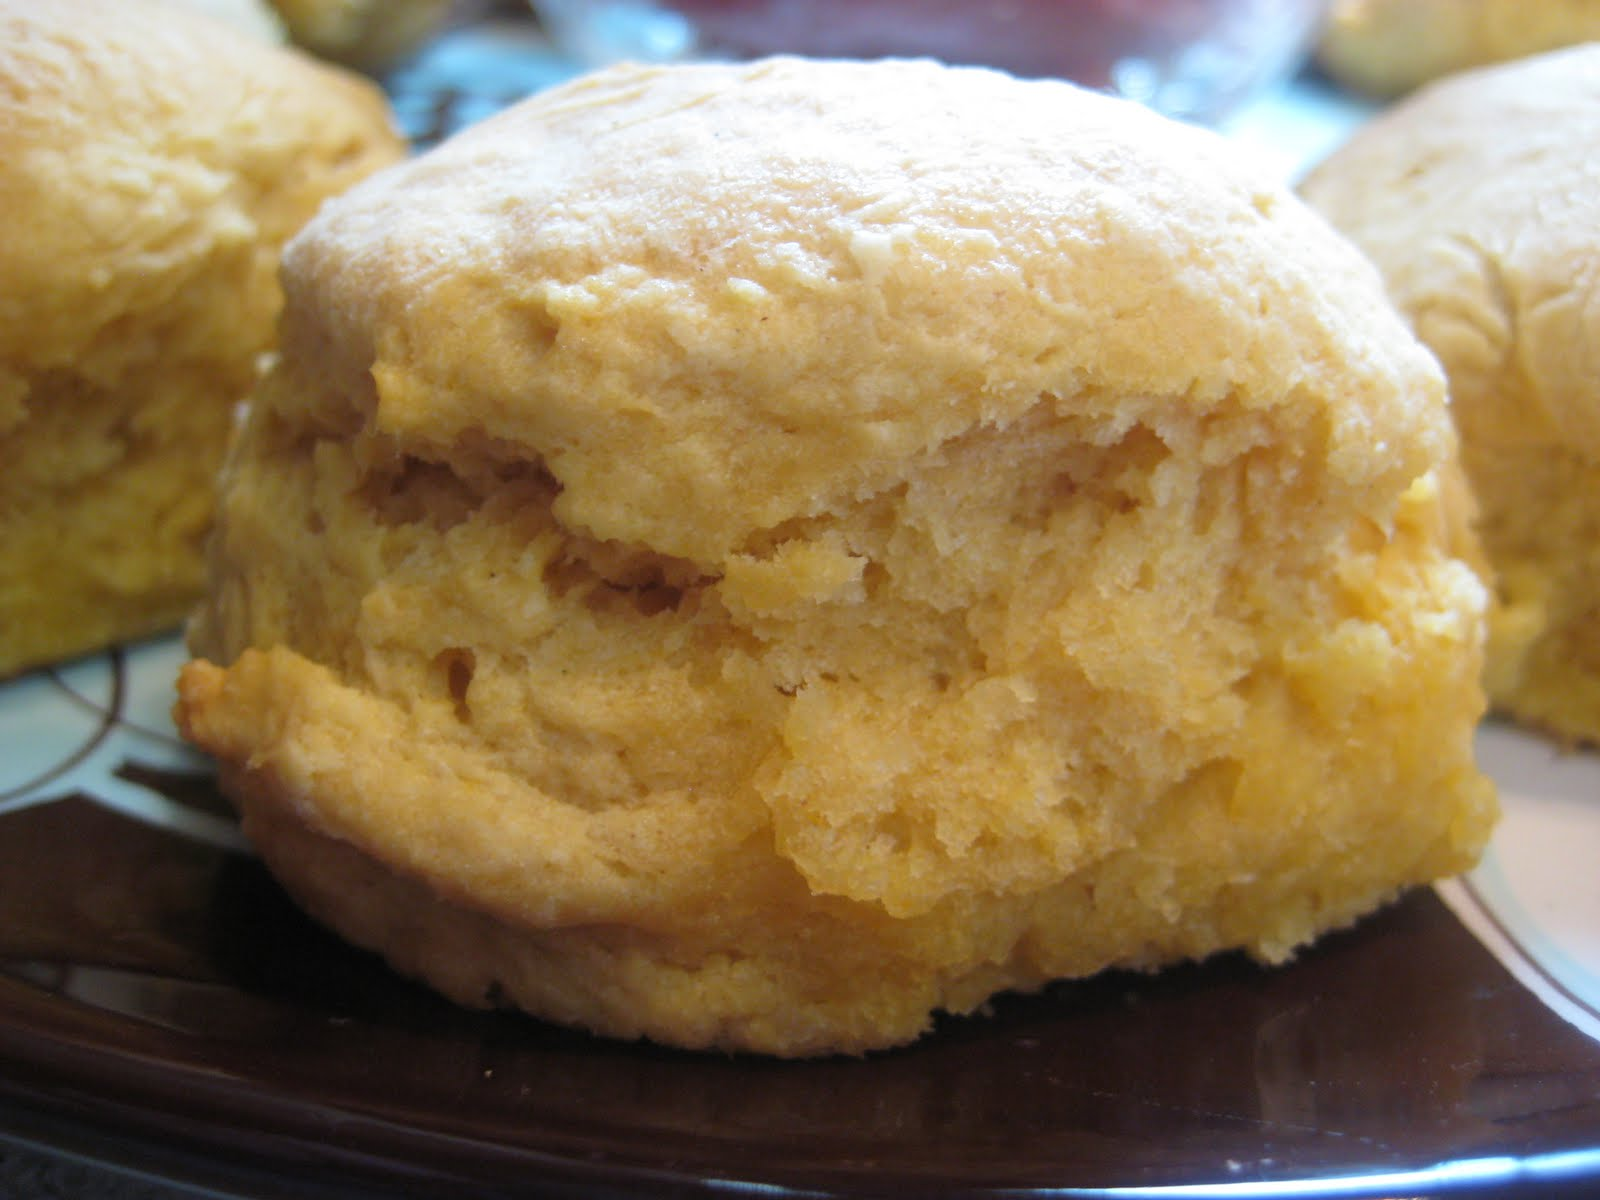 One Couple's Kitchen: Sweet Potato Biscuits